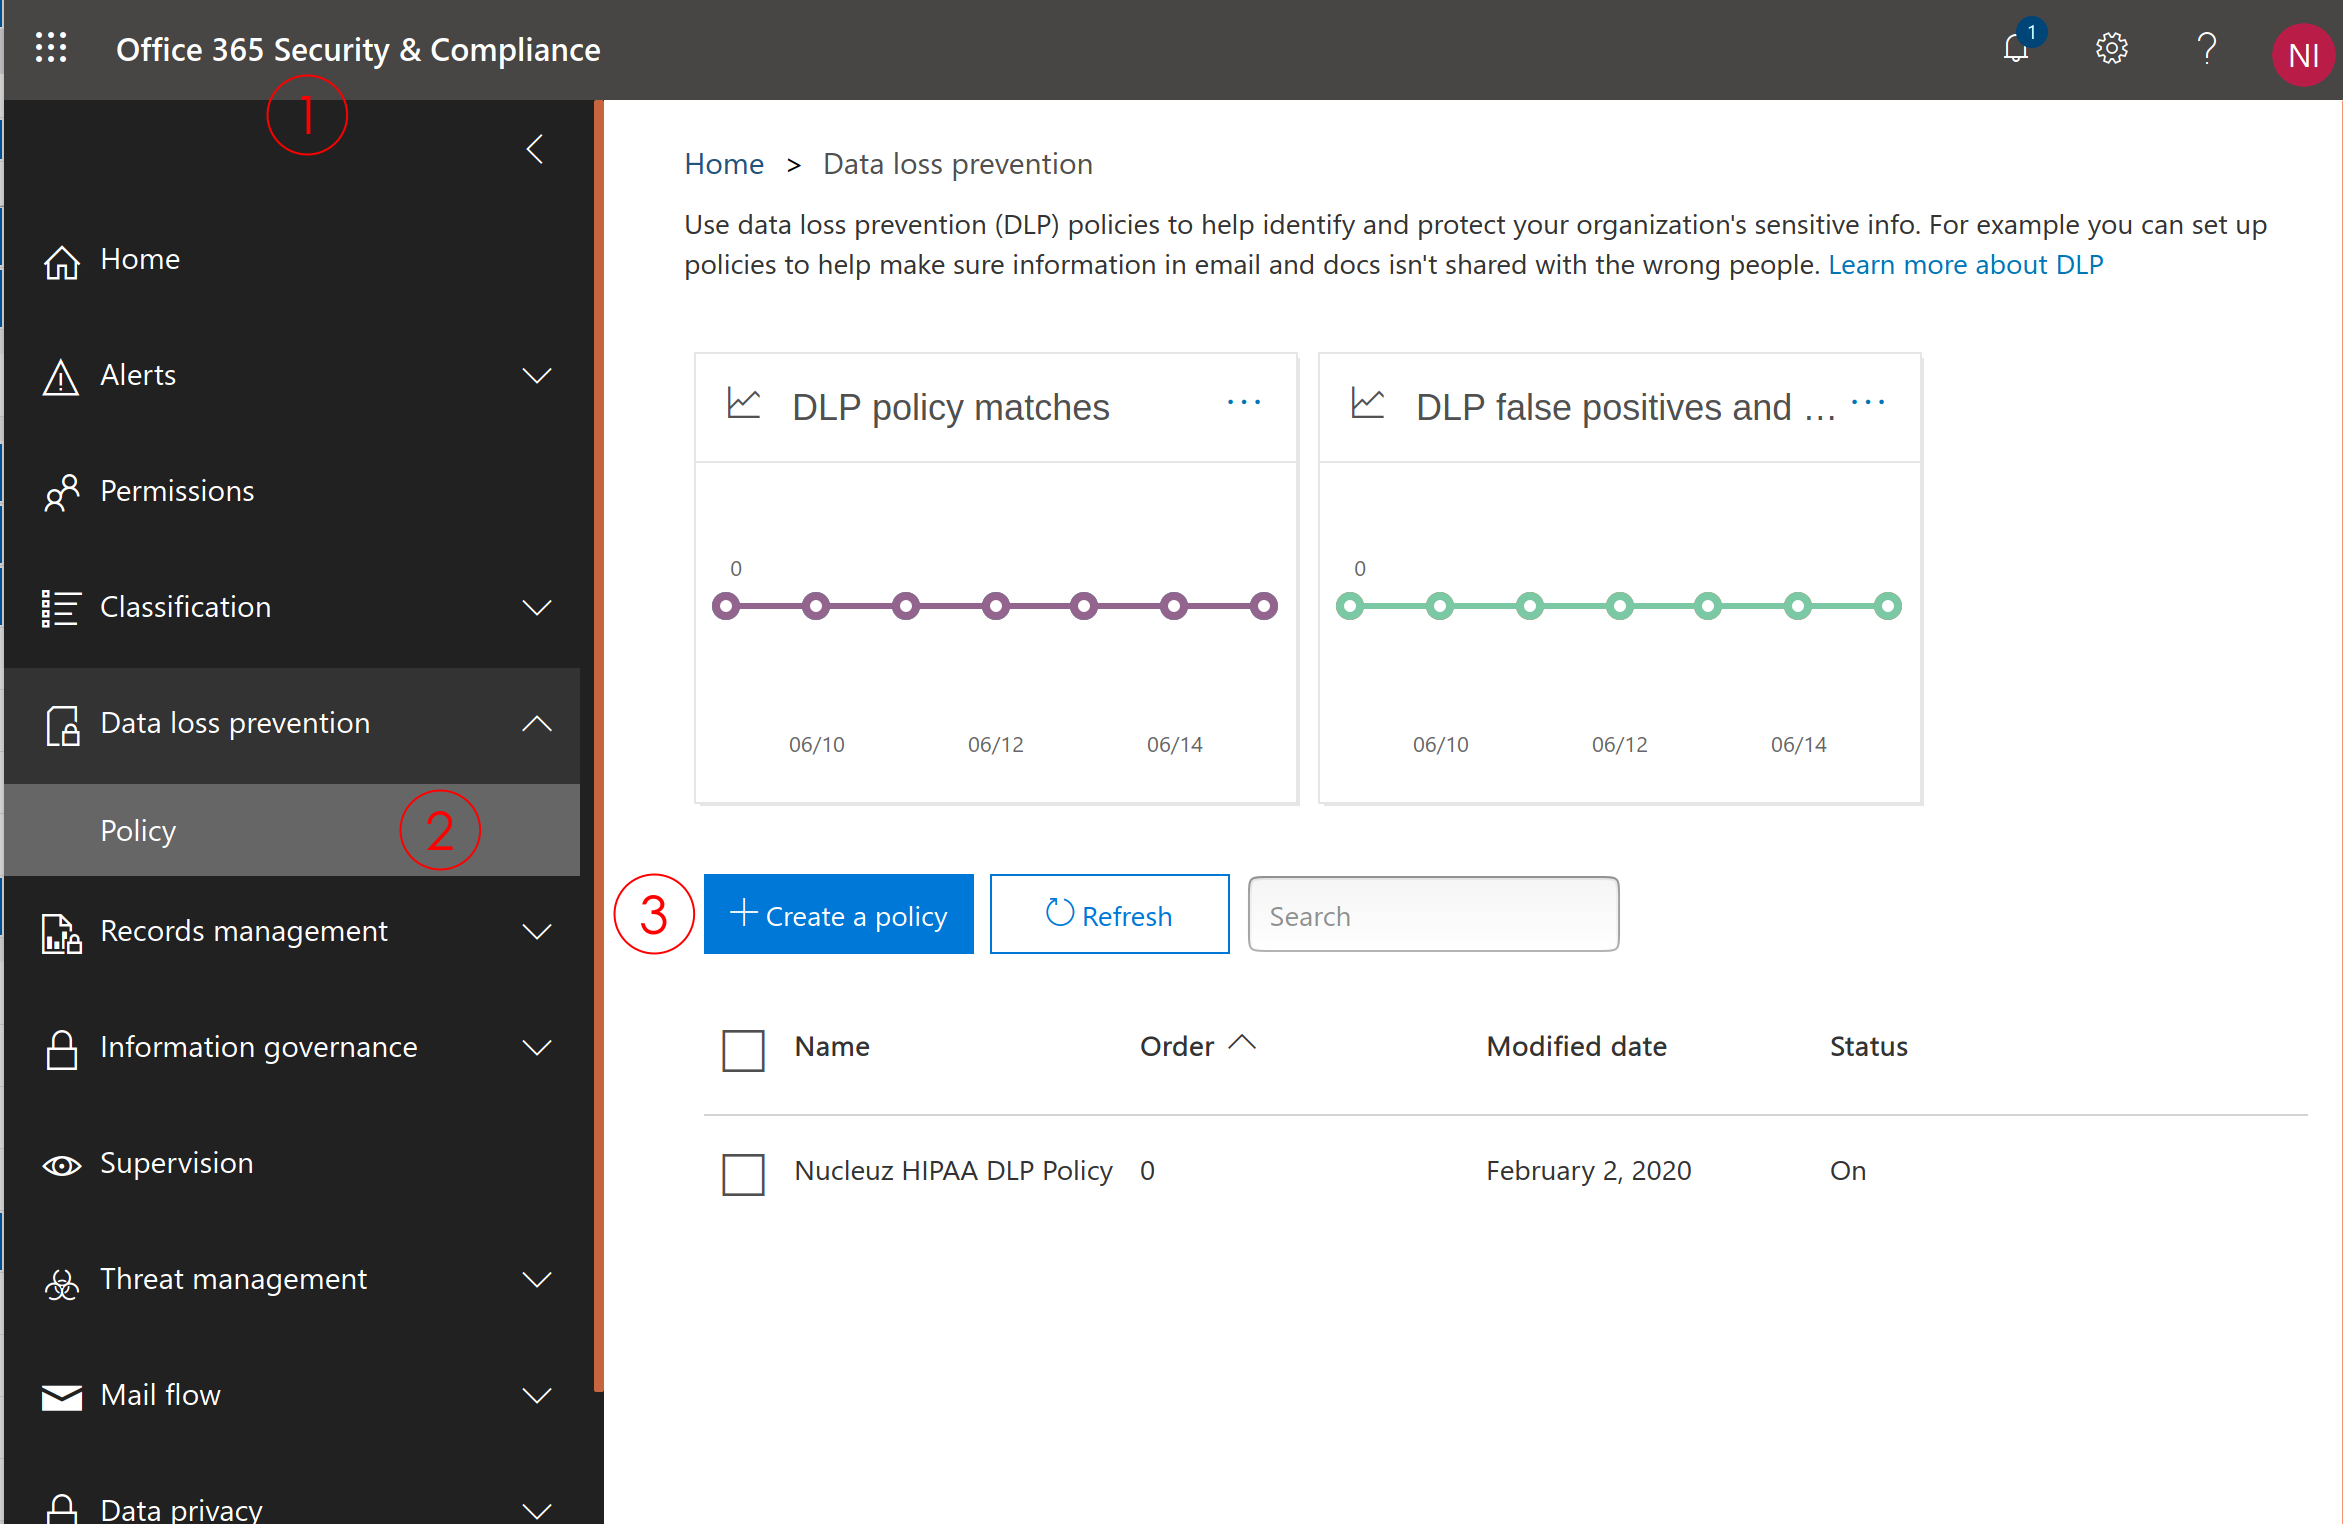 Screenshot of Office 365 Security & Compliance Center